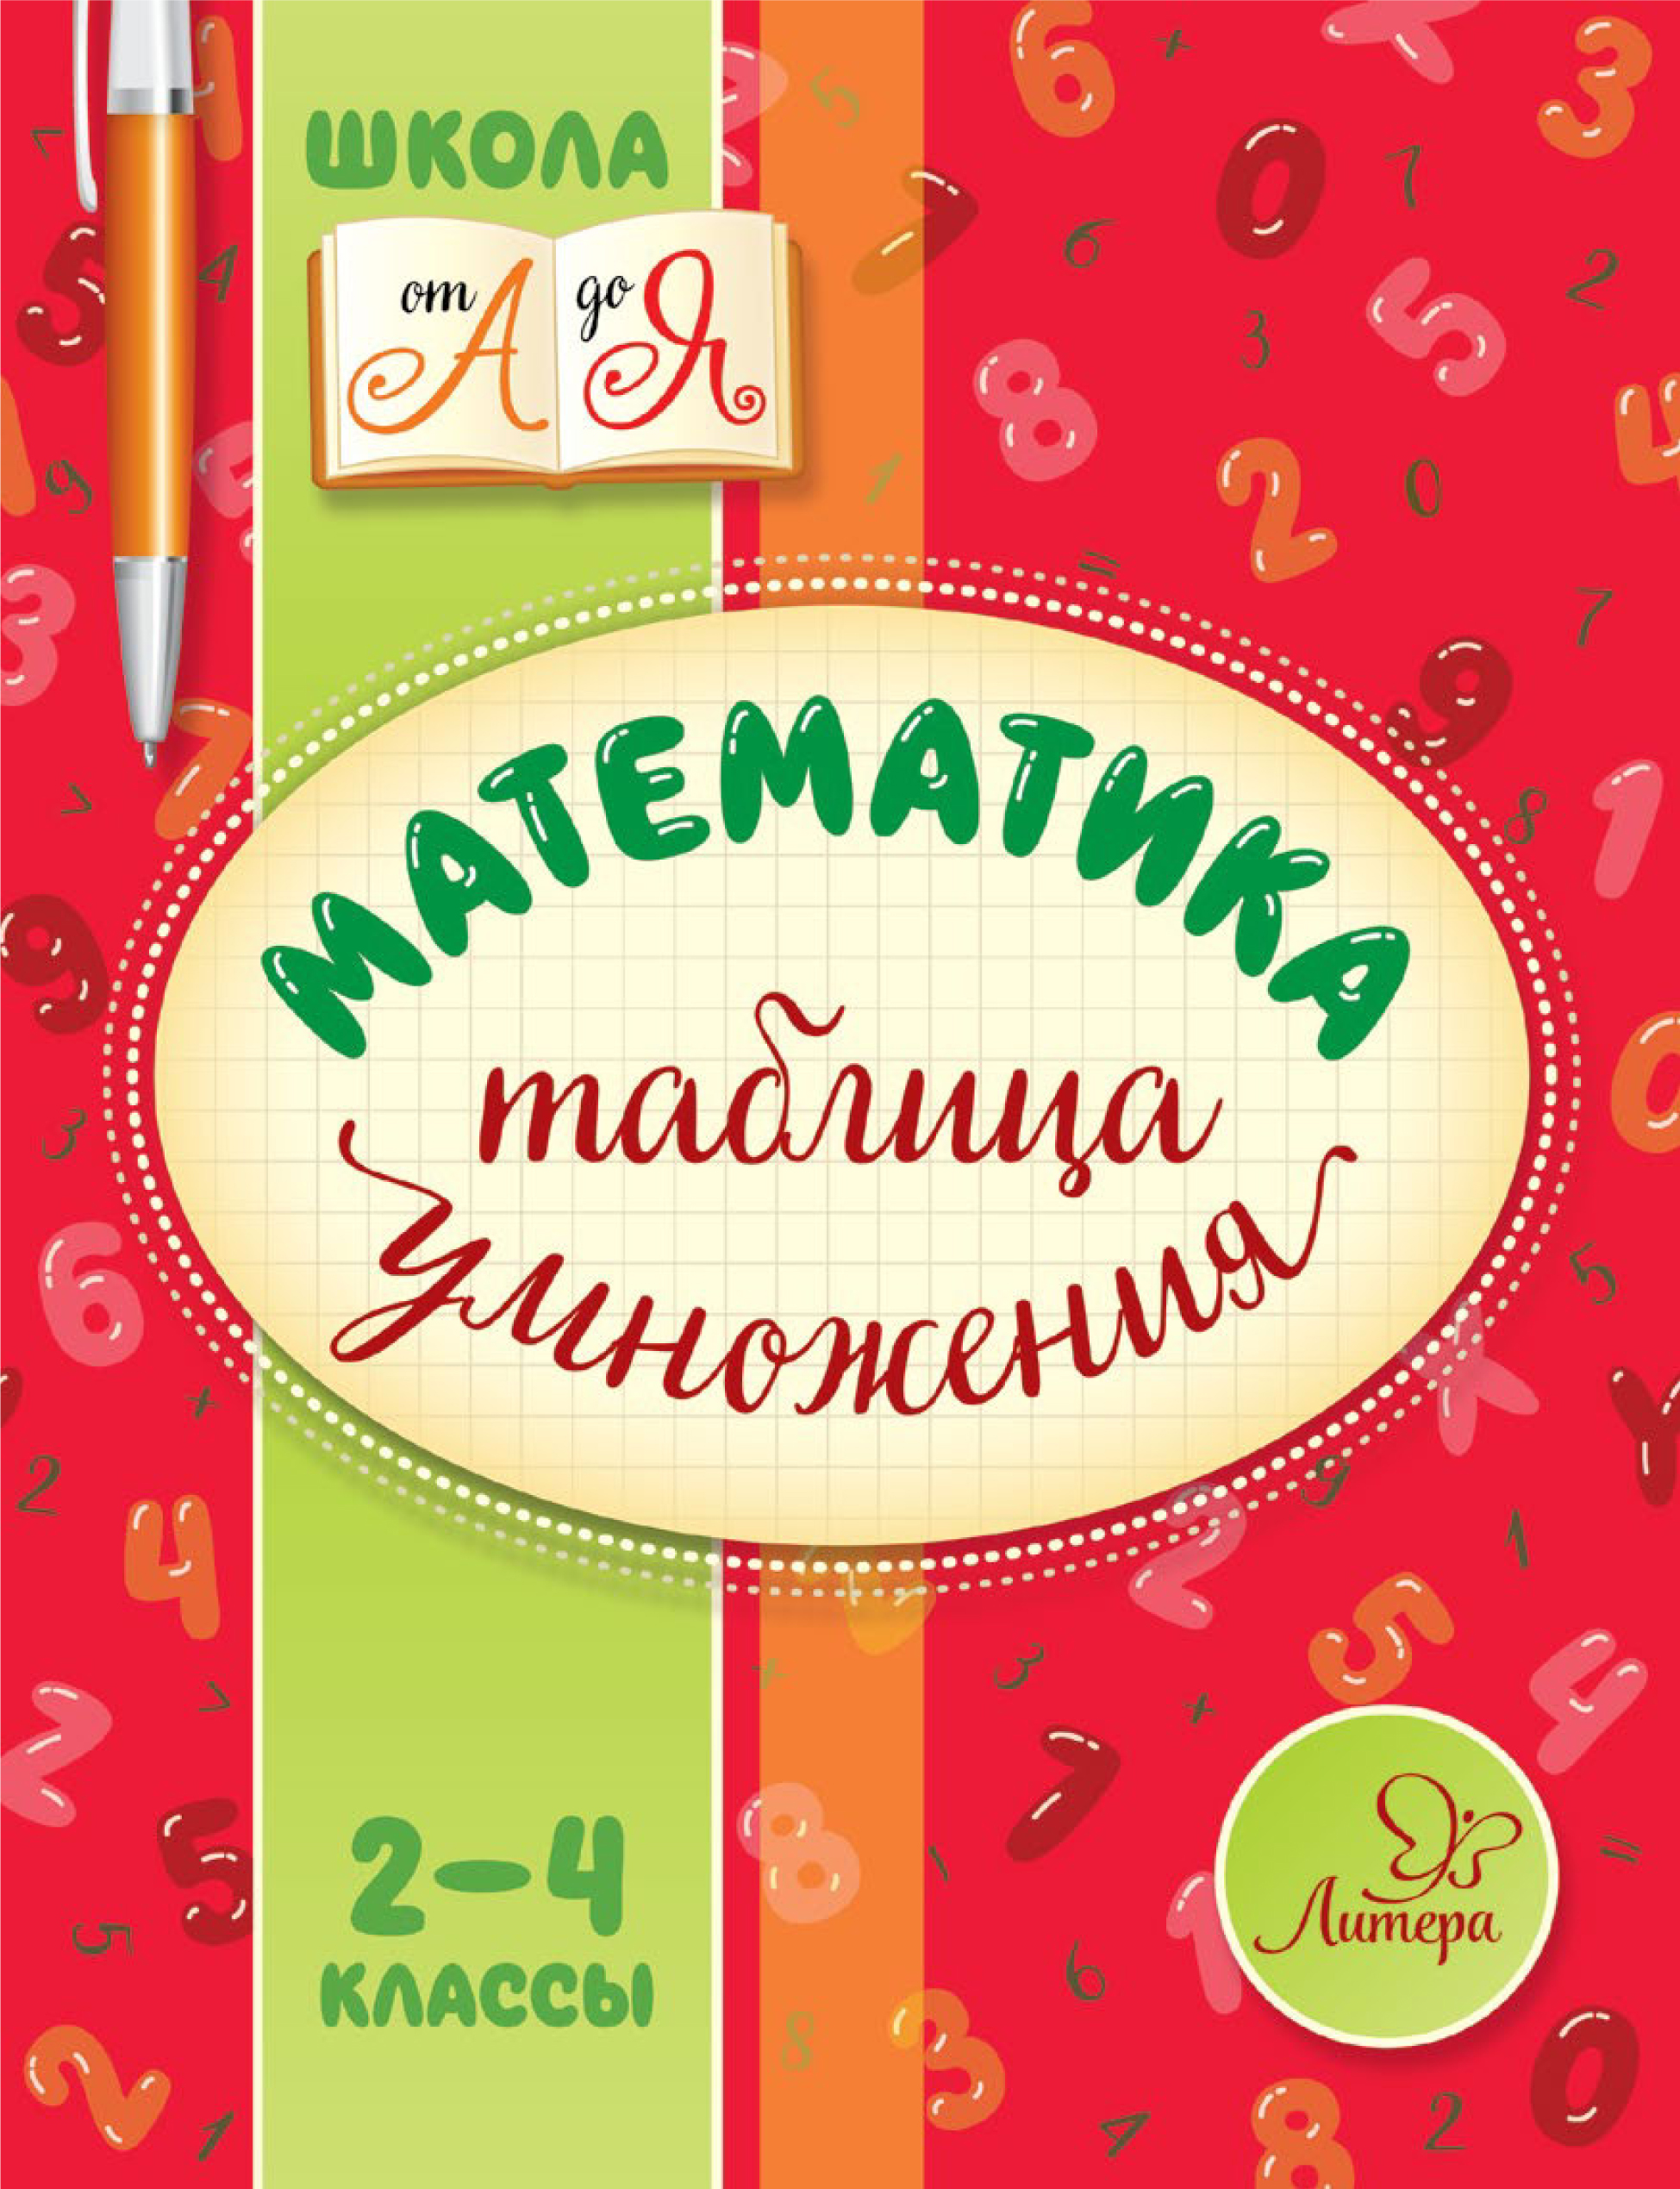 В. А. Крутецкая Математика. Таблица умножения. 2-4 классы wooden pro fold up table for professional magician magic tricks stage illusion accessories gimmick easy to carry magia toys